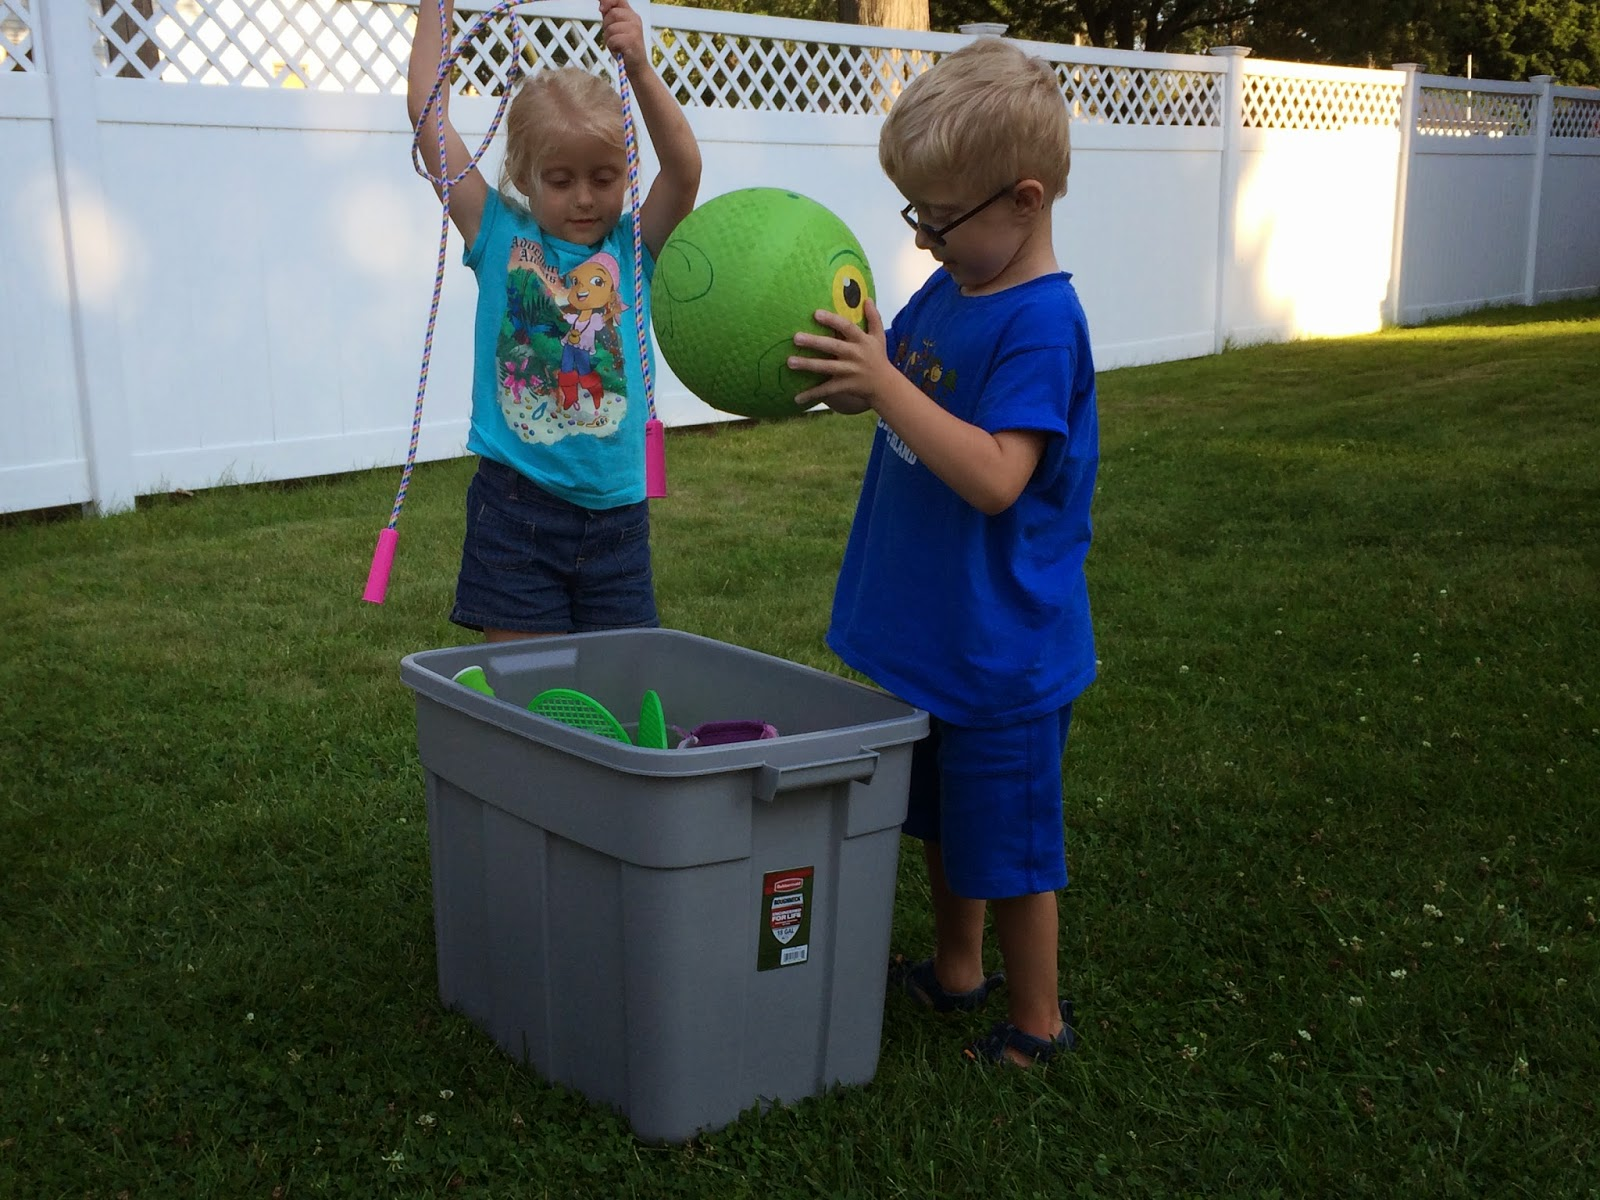 GEEK DADDY: Garbage cans can be used for more than just taking out